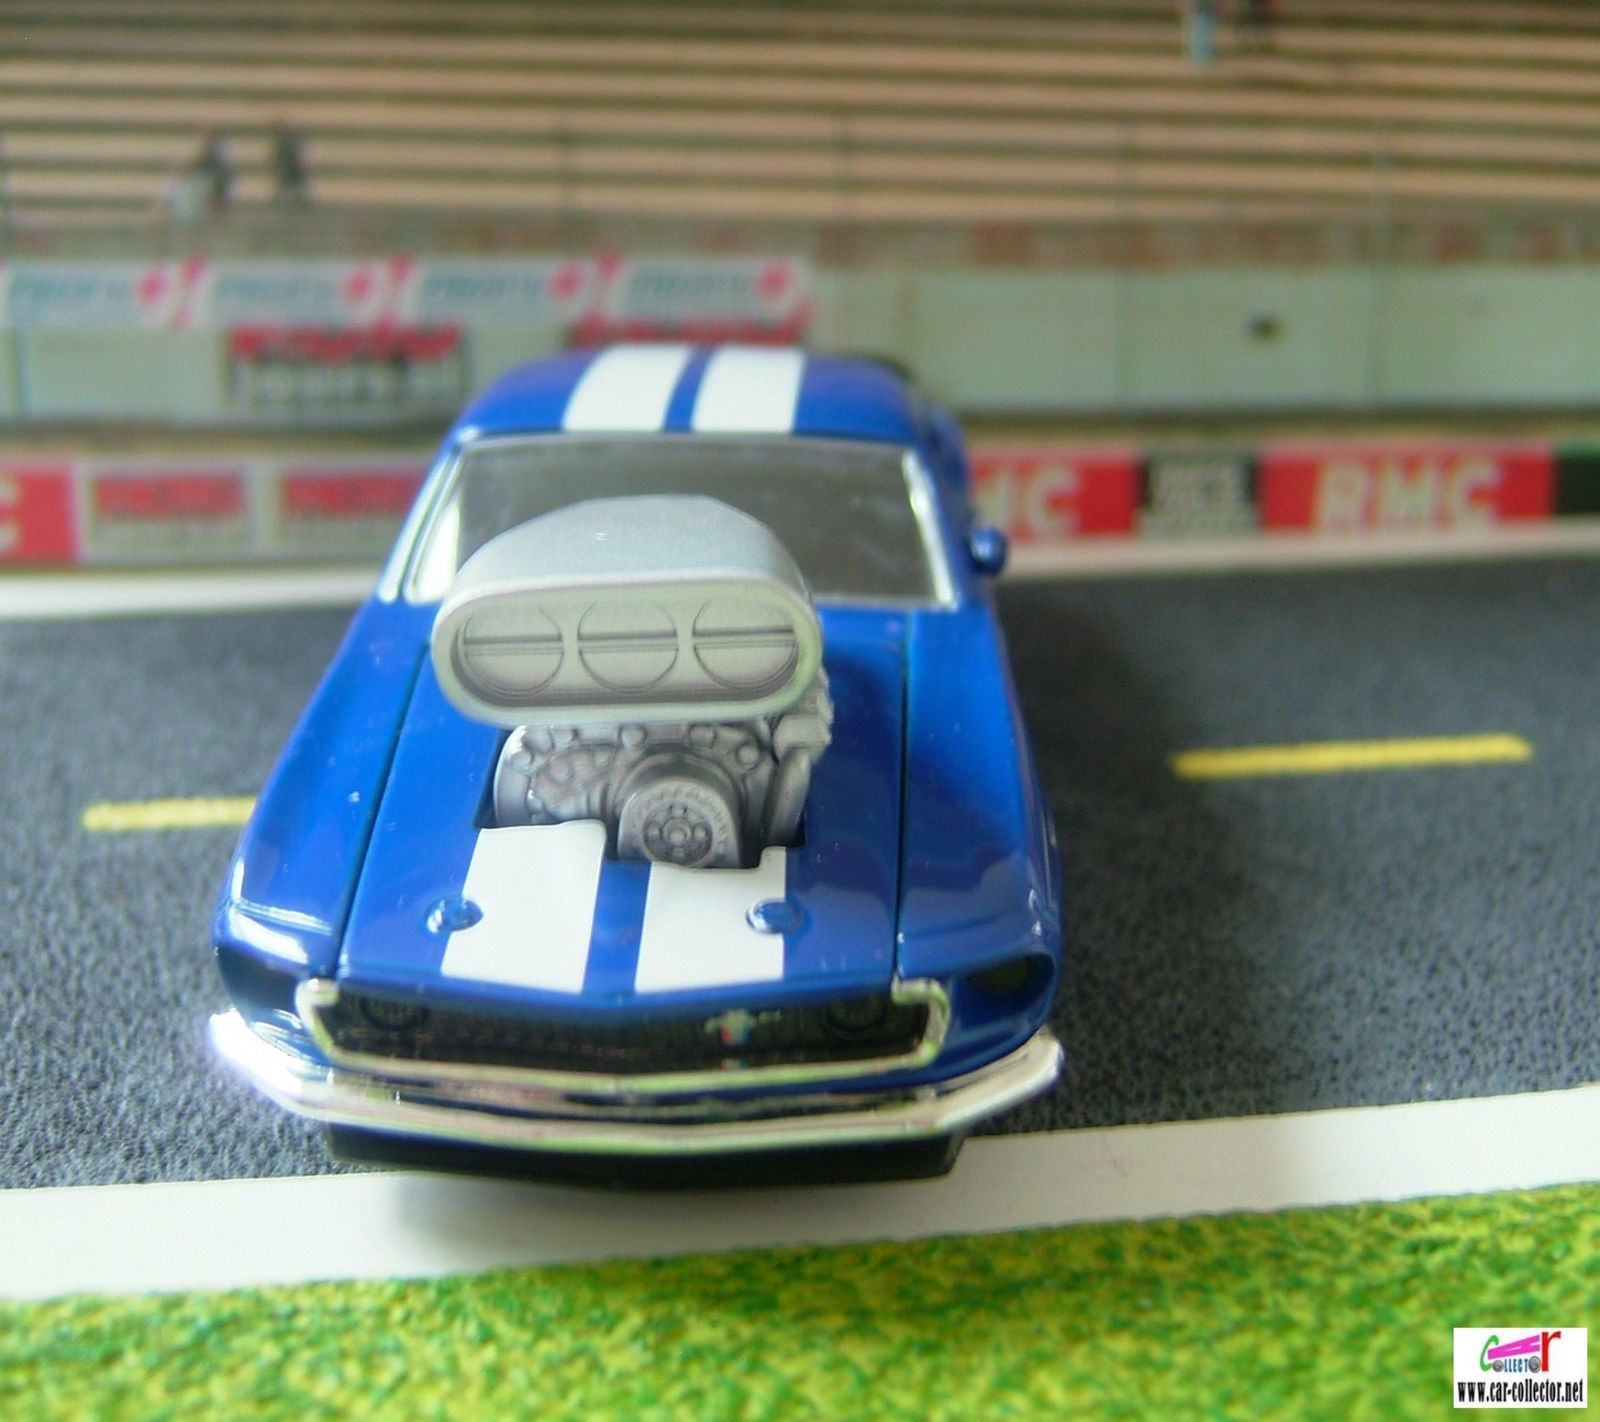 Echelle 1/38 de chez Dickie toys, série Speed champs, made in China, référence T671.